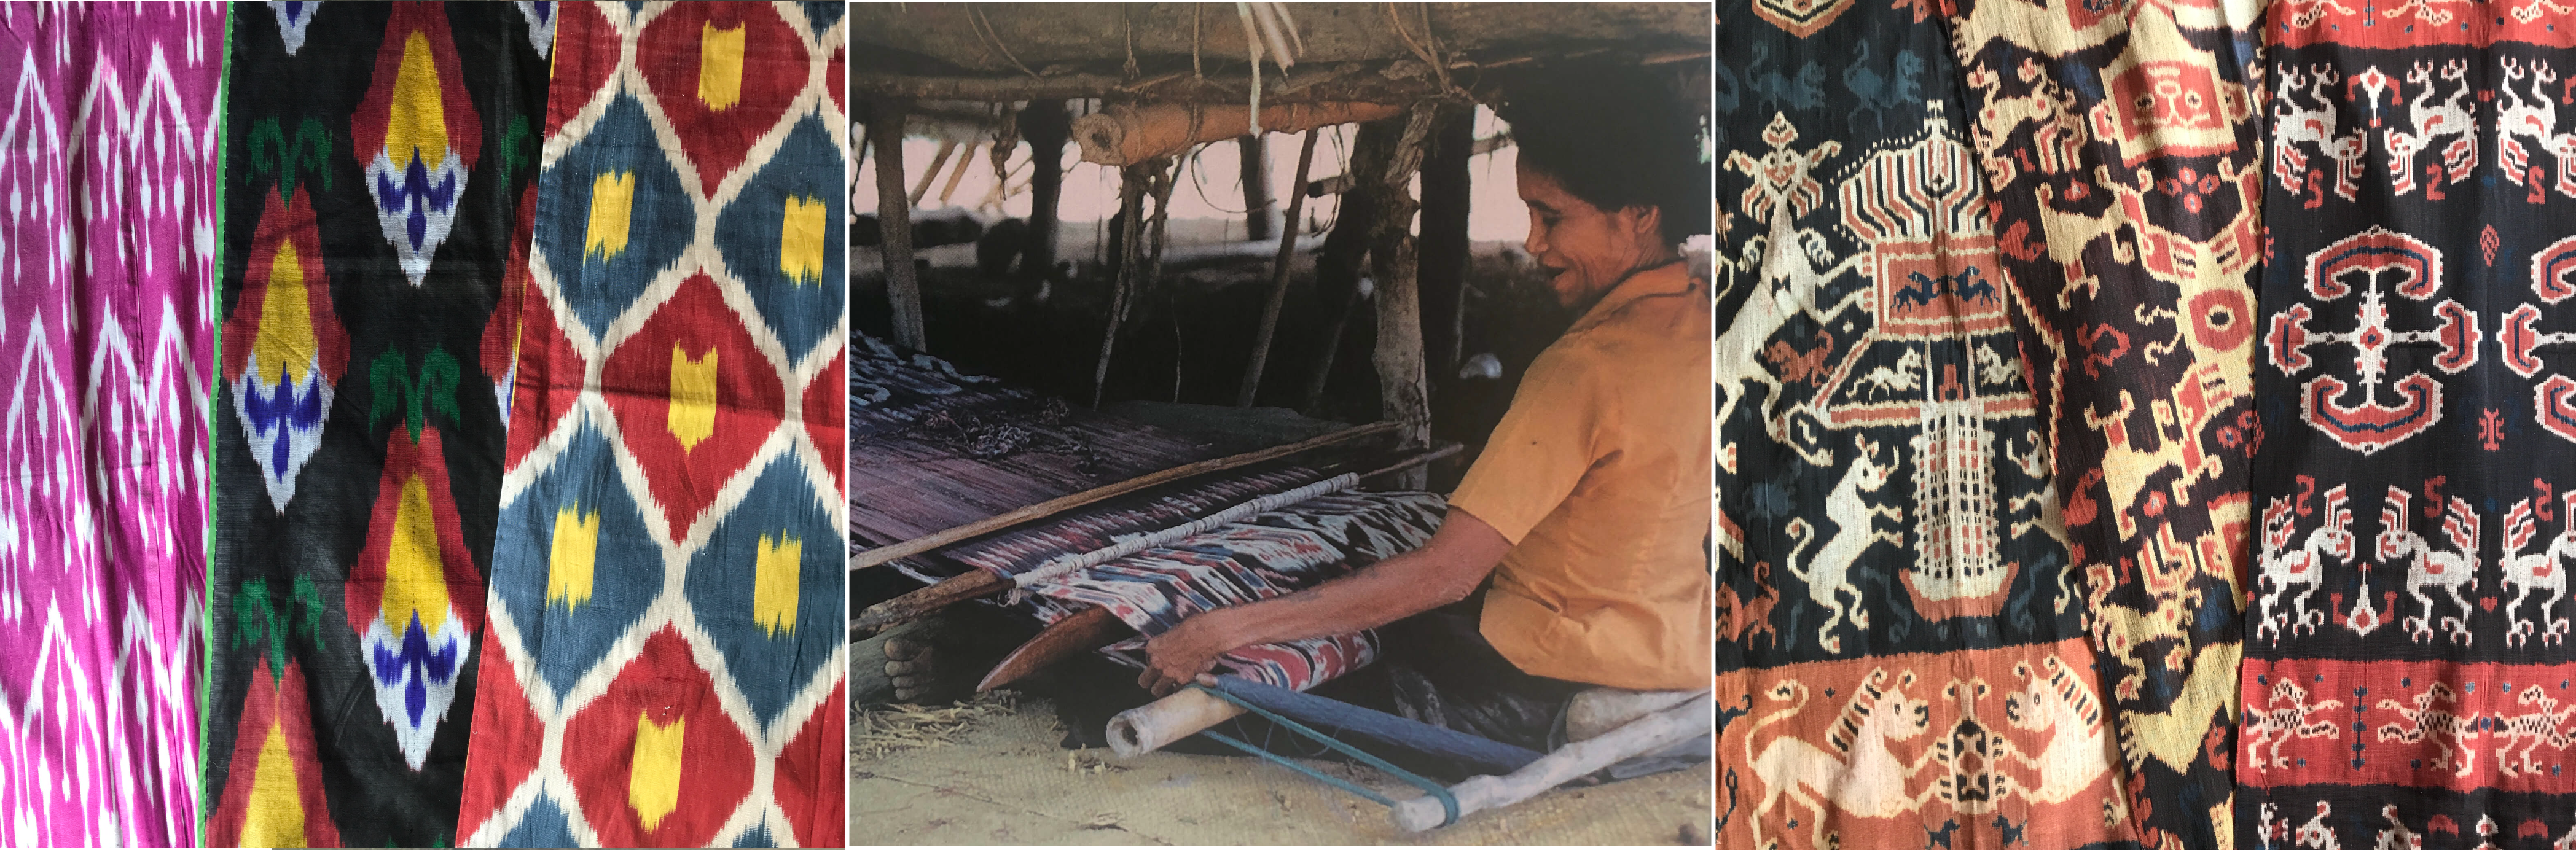 Ikat weaving textile examples from Uzbekistan & Indonesia